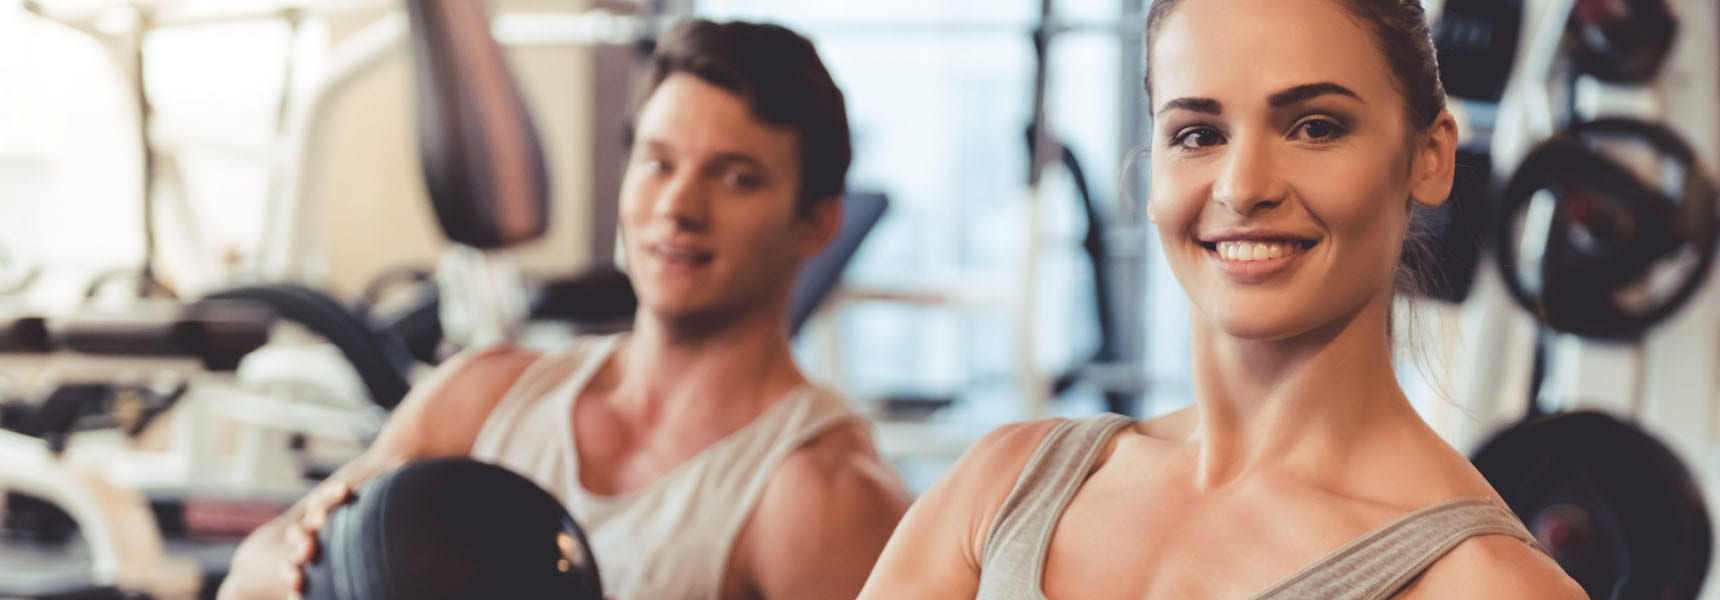 man and woman working out in a modern gym